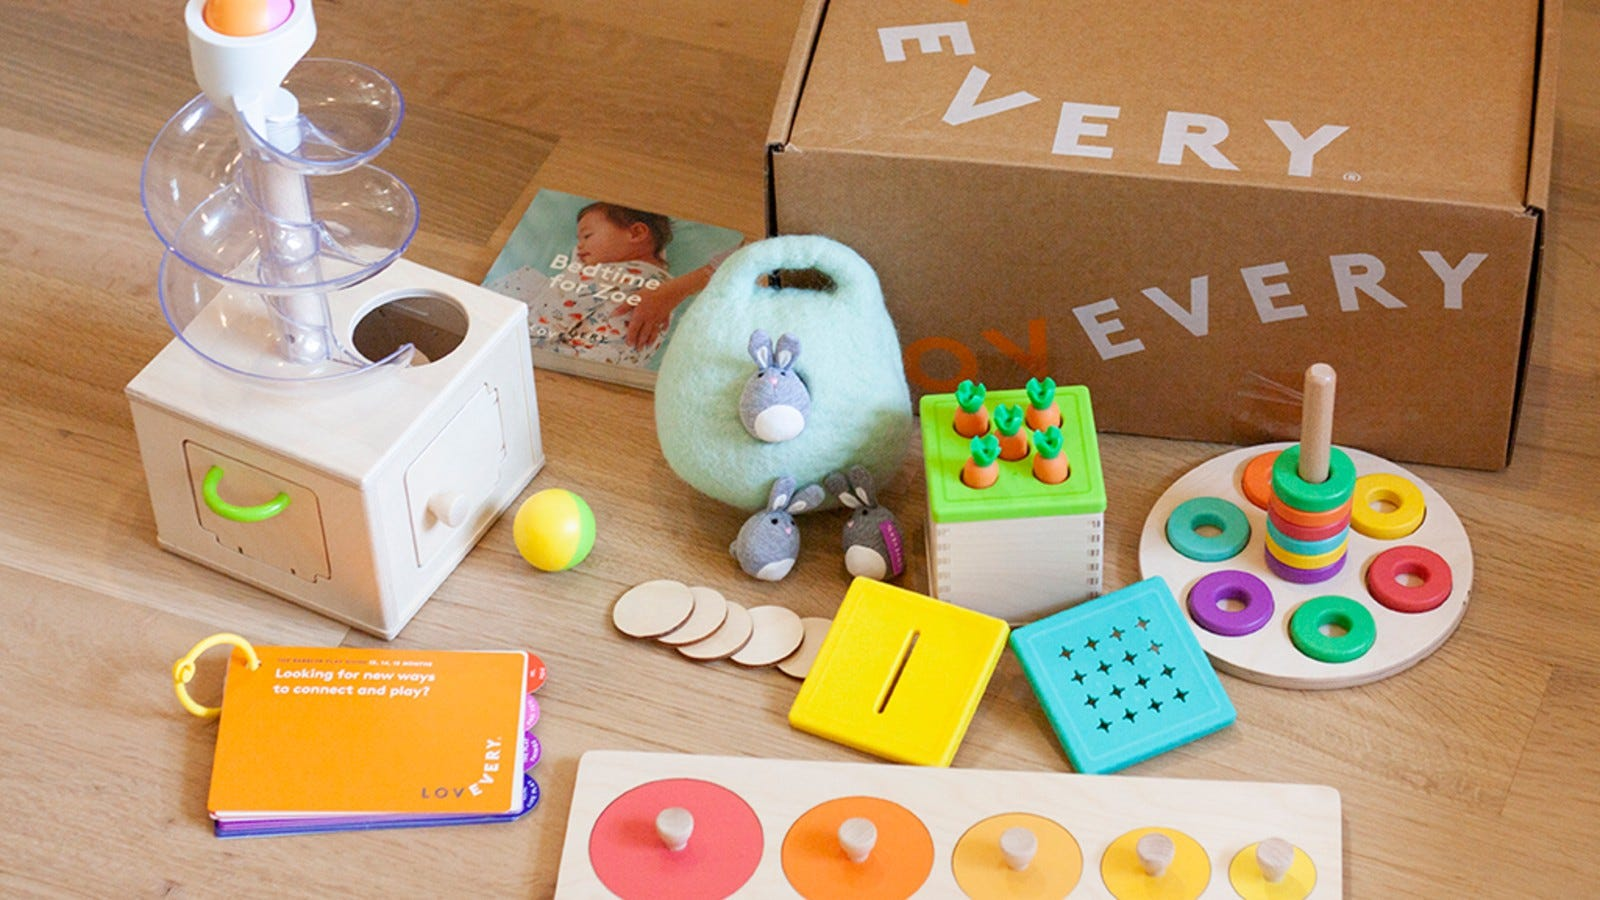 a cardboard box surrounded by colorful wooden toys for a baby